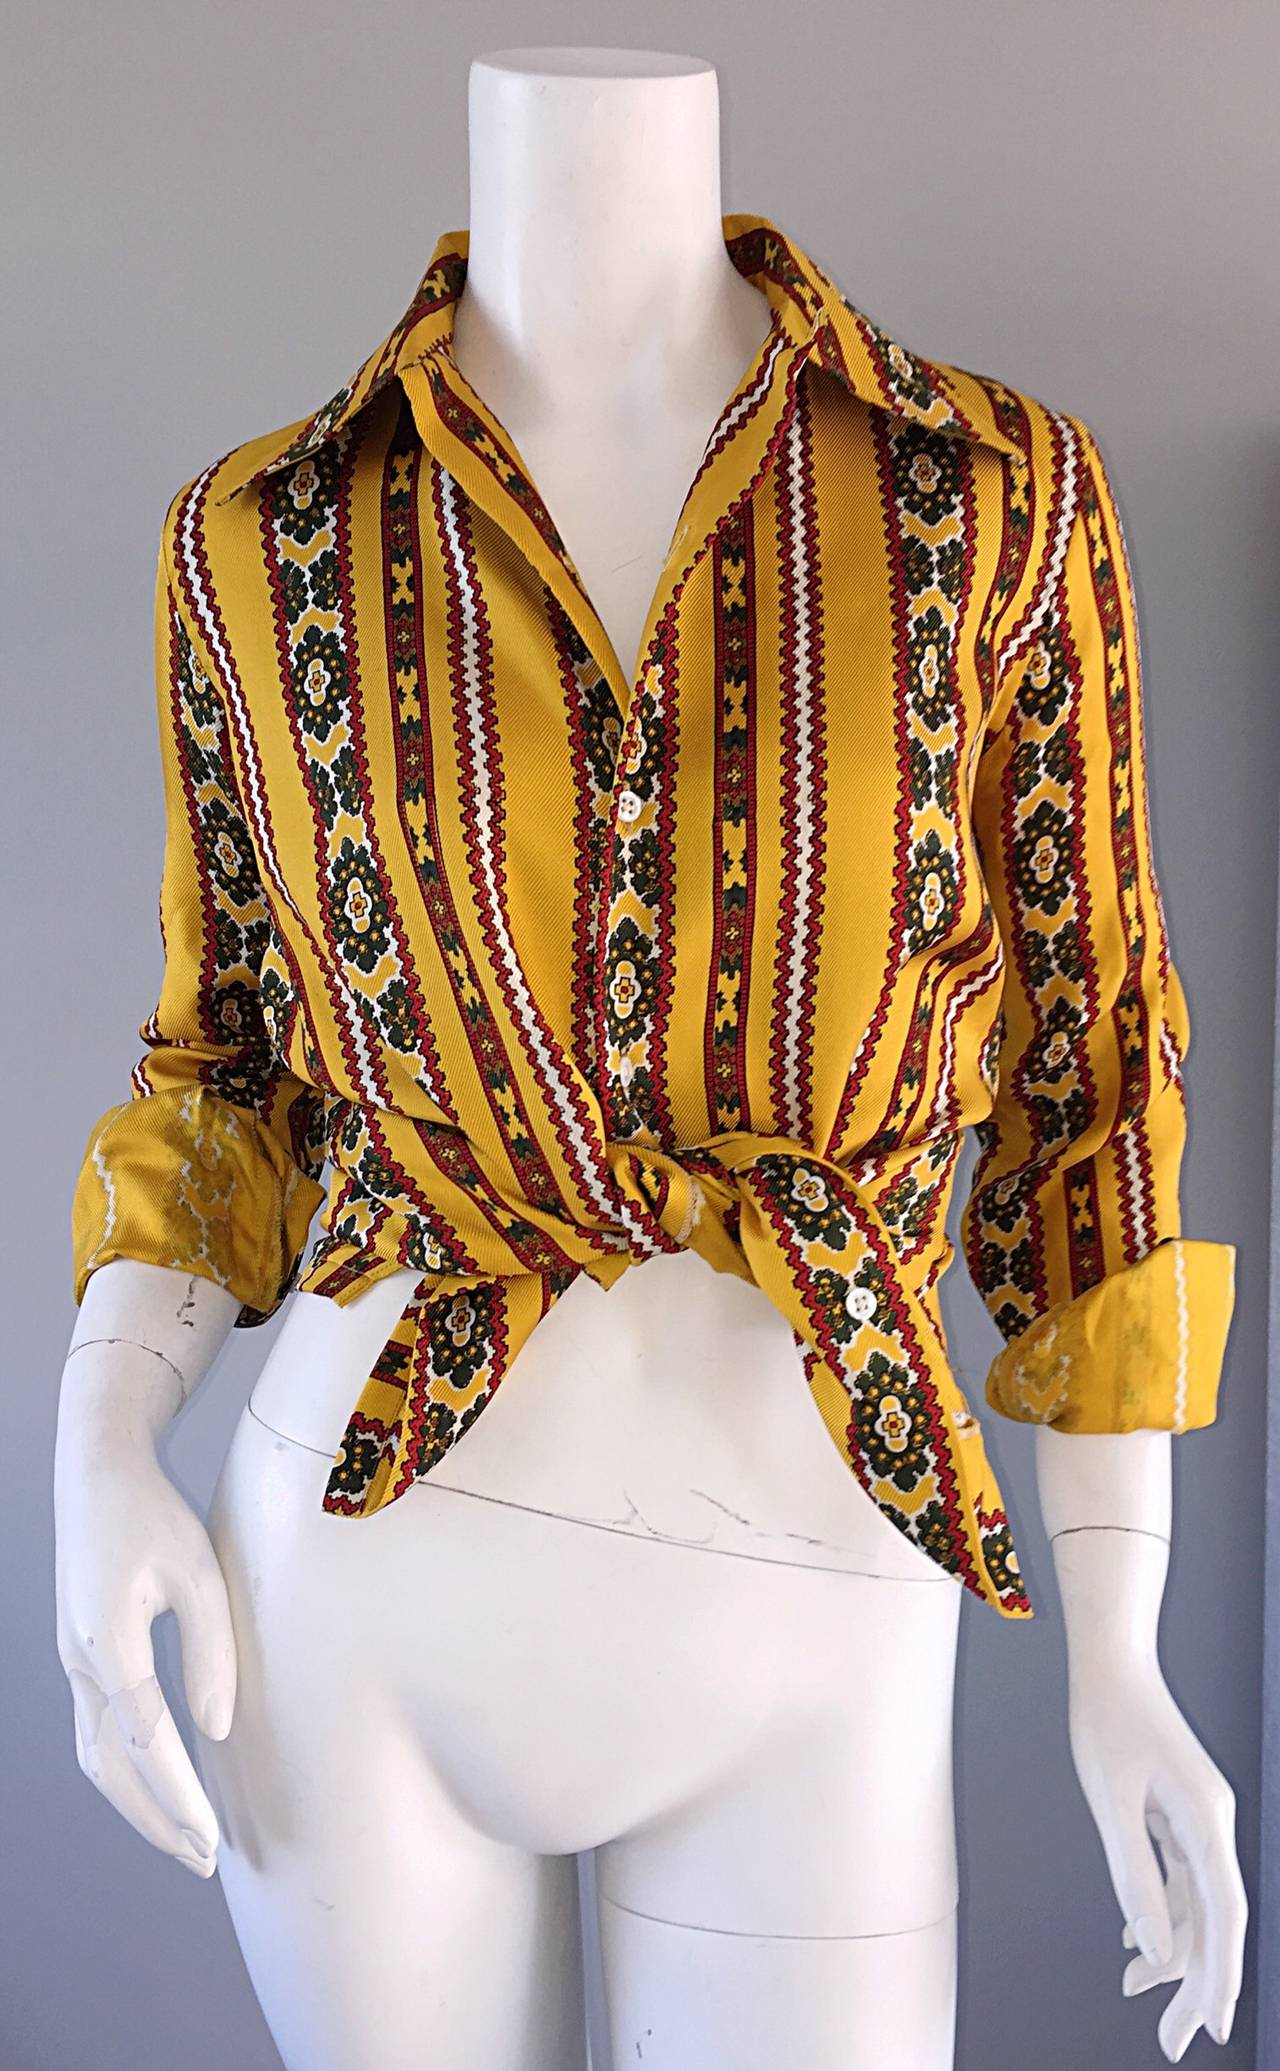 Rare 1980s Ralph Lauren ' Blue Label ' Vintage Aztec Ethnic Silk Blouse Top For Sale 3